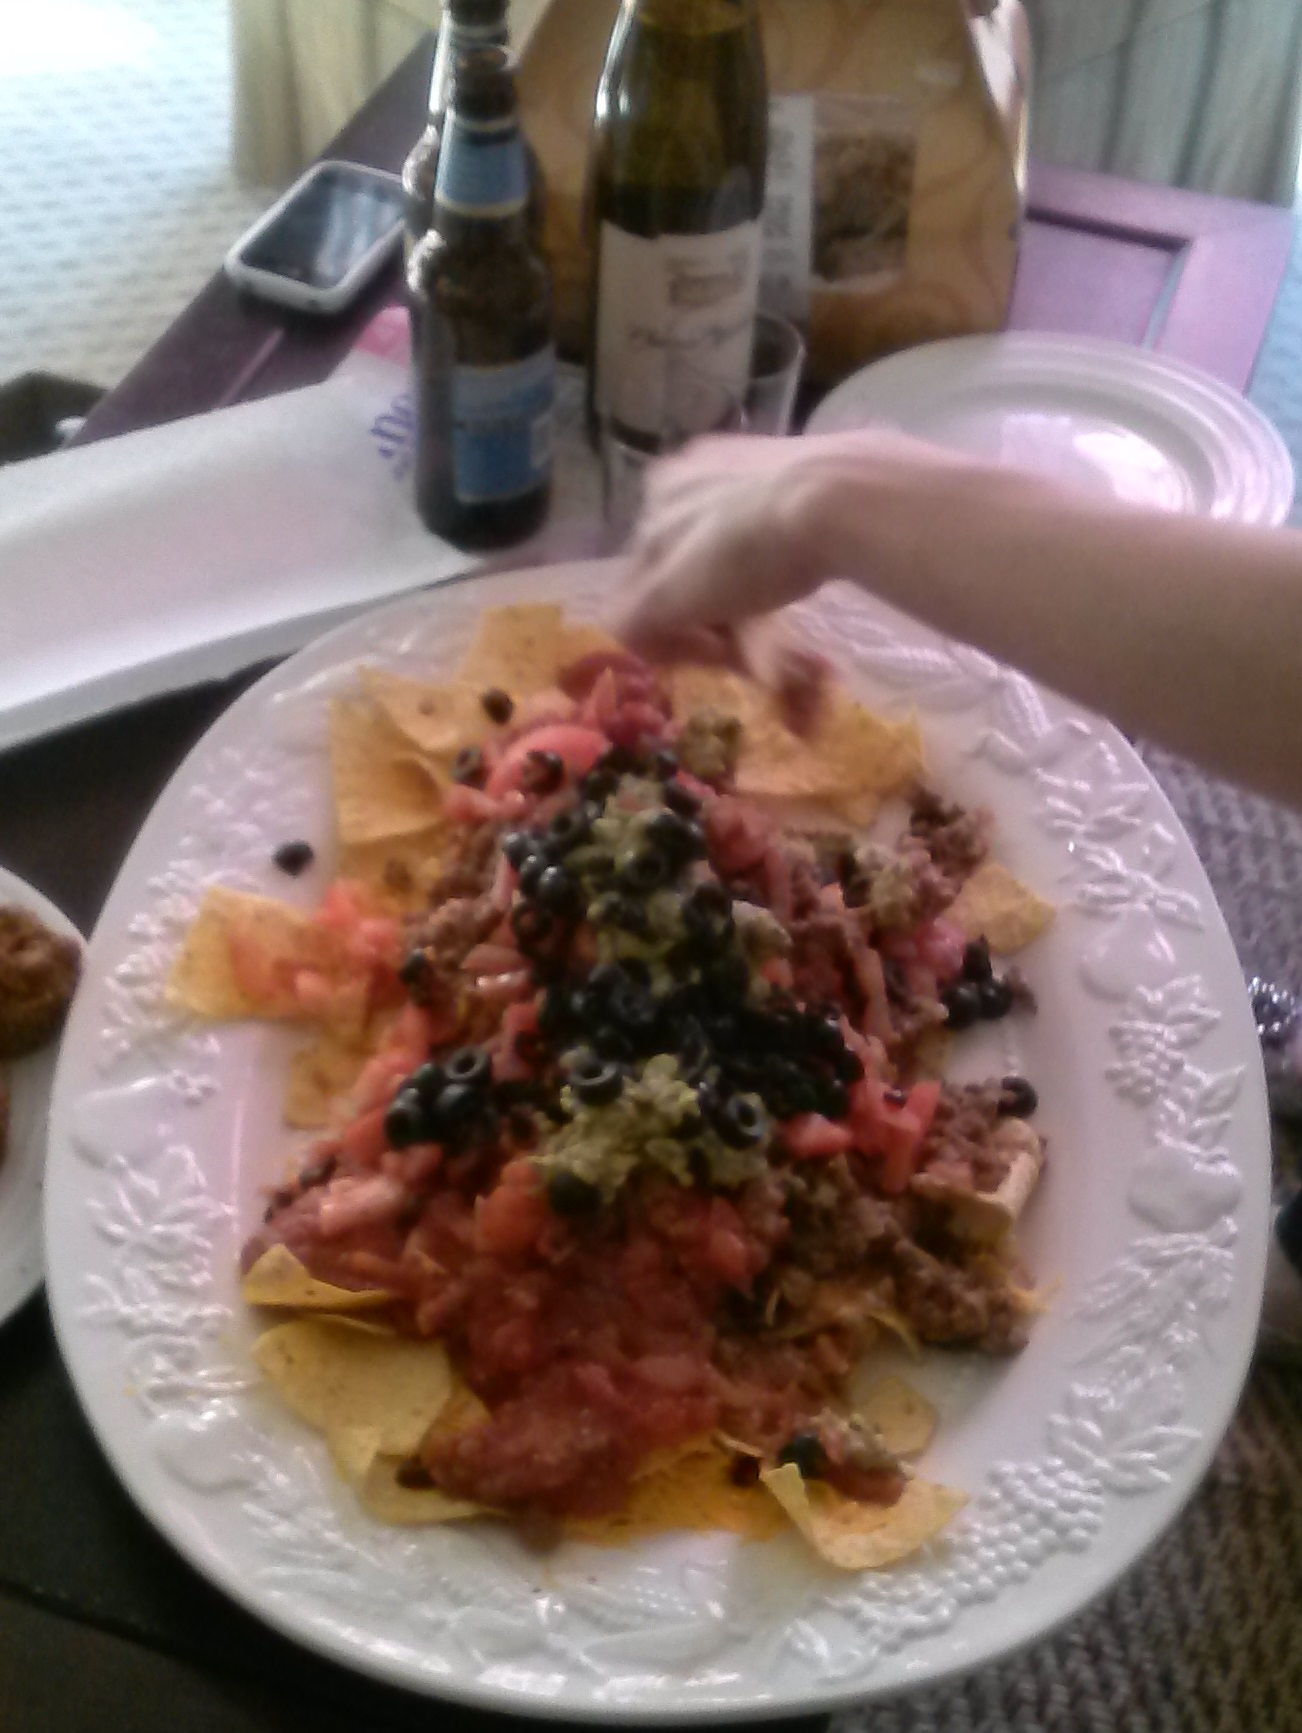 Big plate of nachos